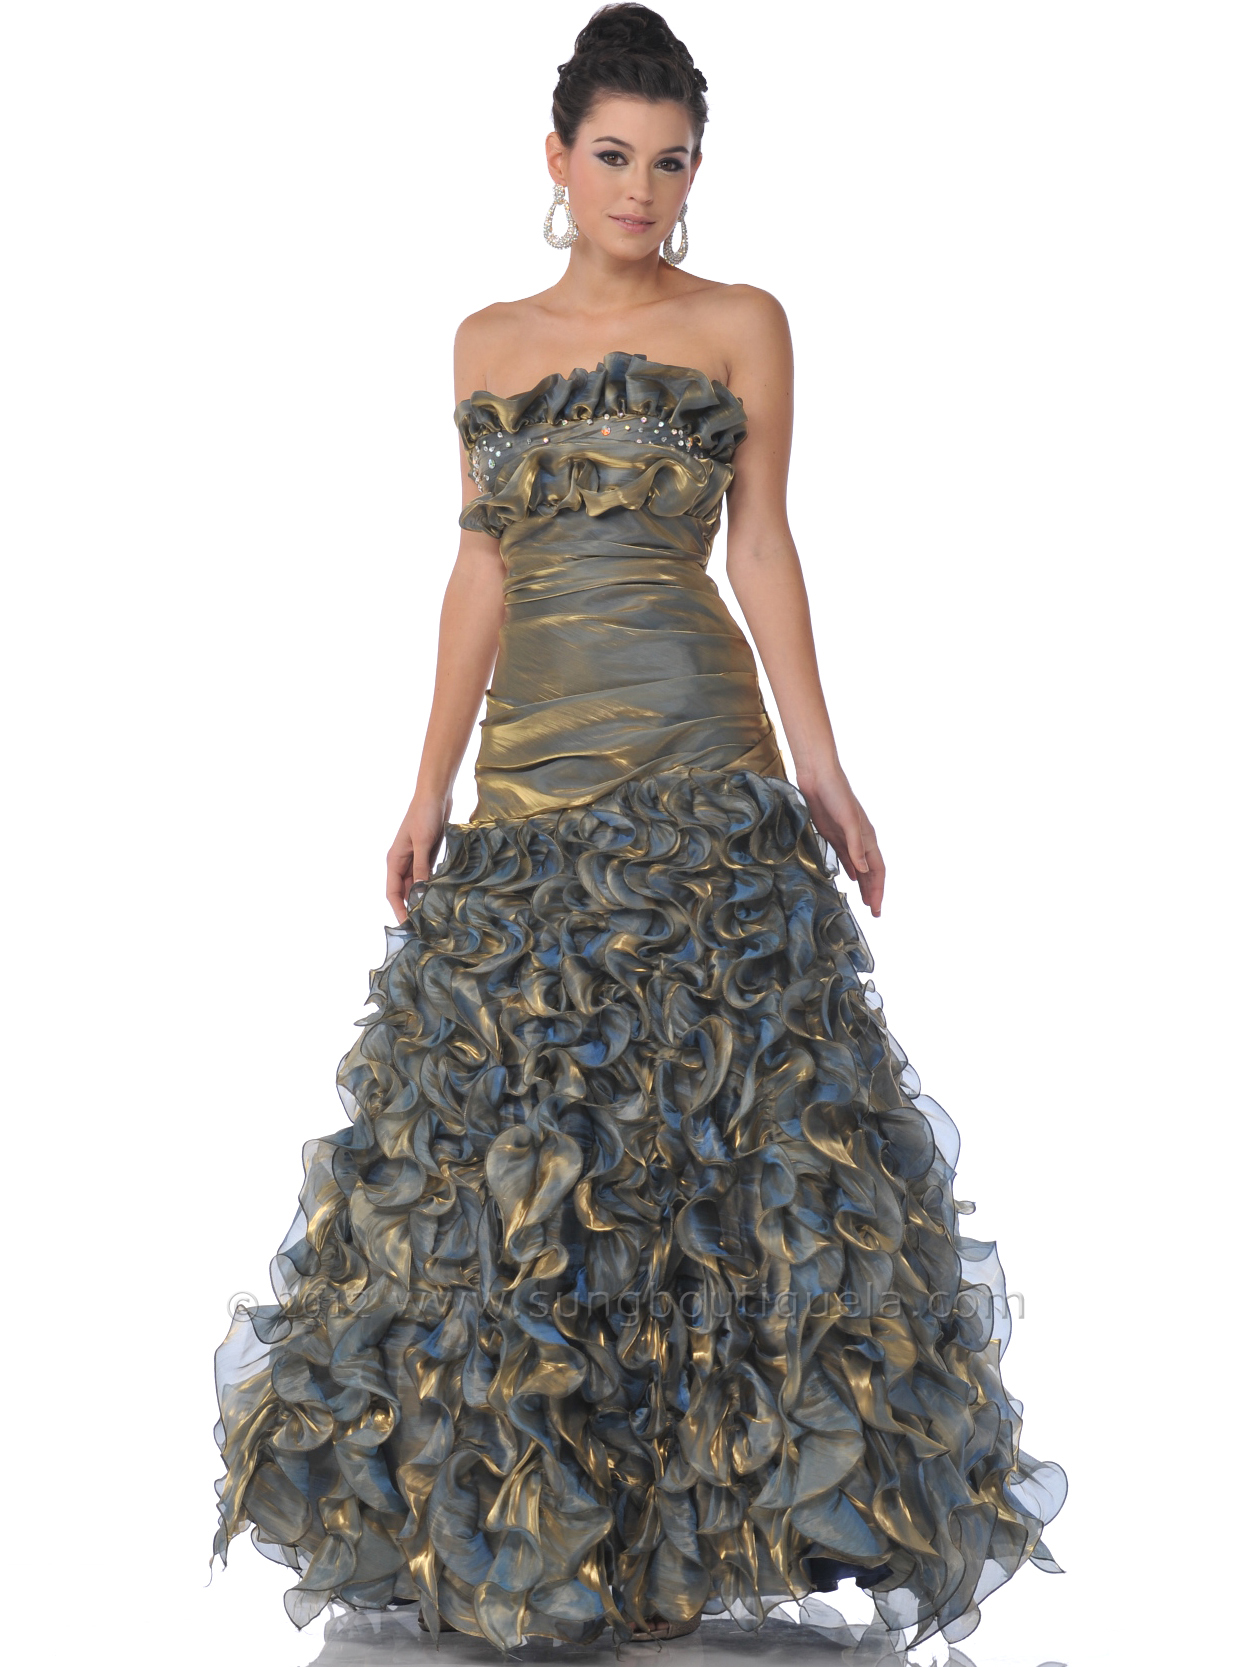 17 Gold Strapless Iridescent Ruffled Prom Dresses - Front Image